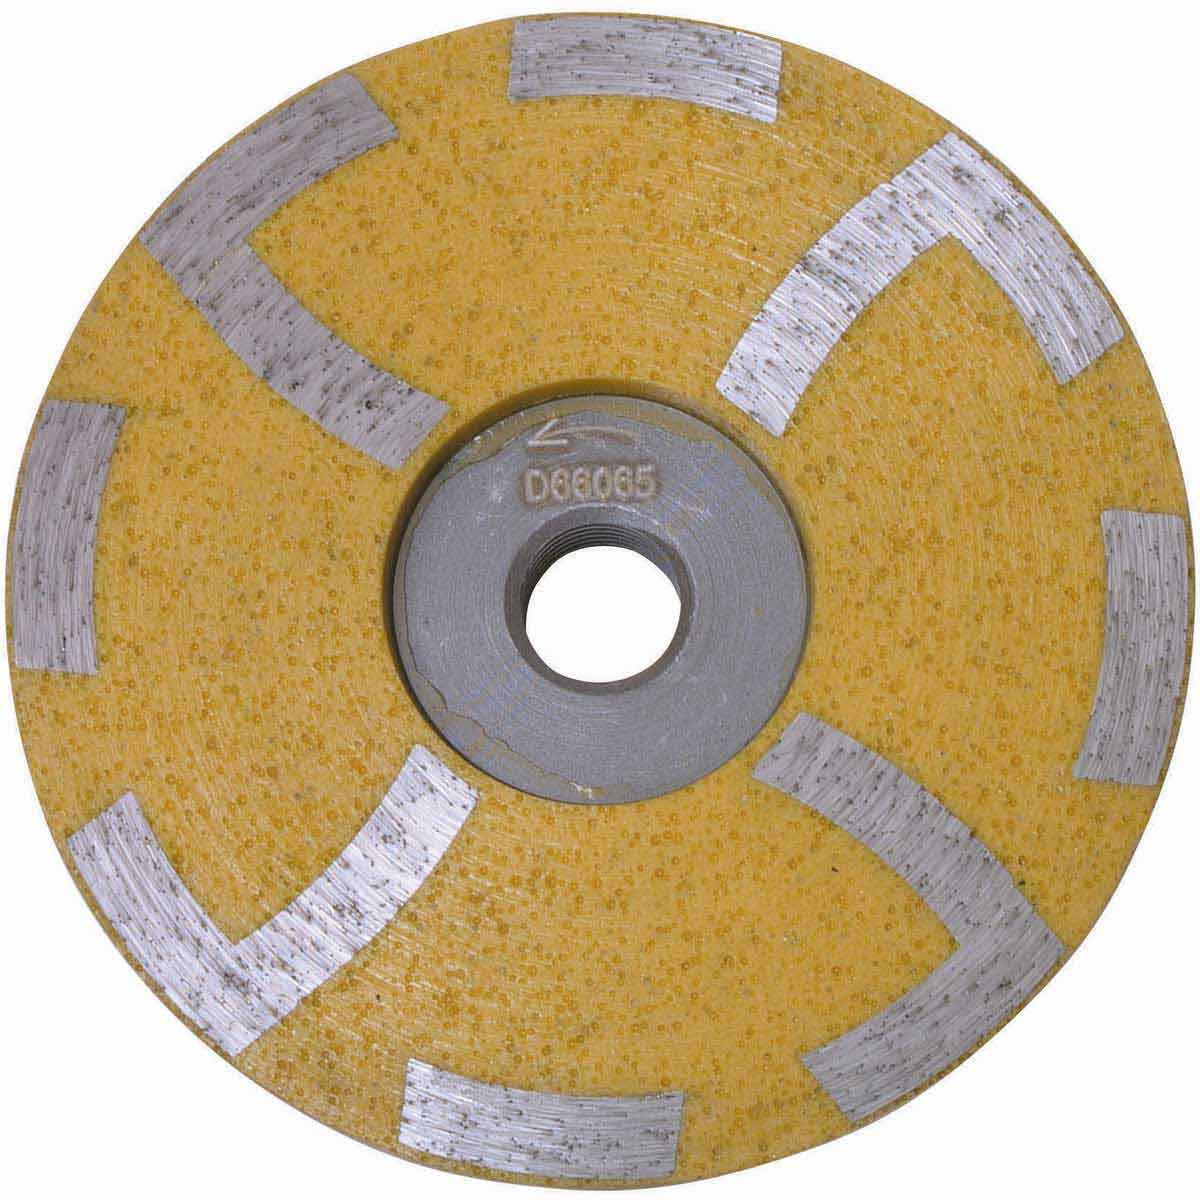 D66065 Yellow Diteq 4 inch Resin Filled Cup Wheels